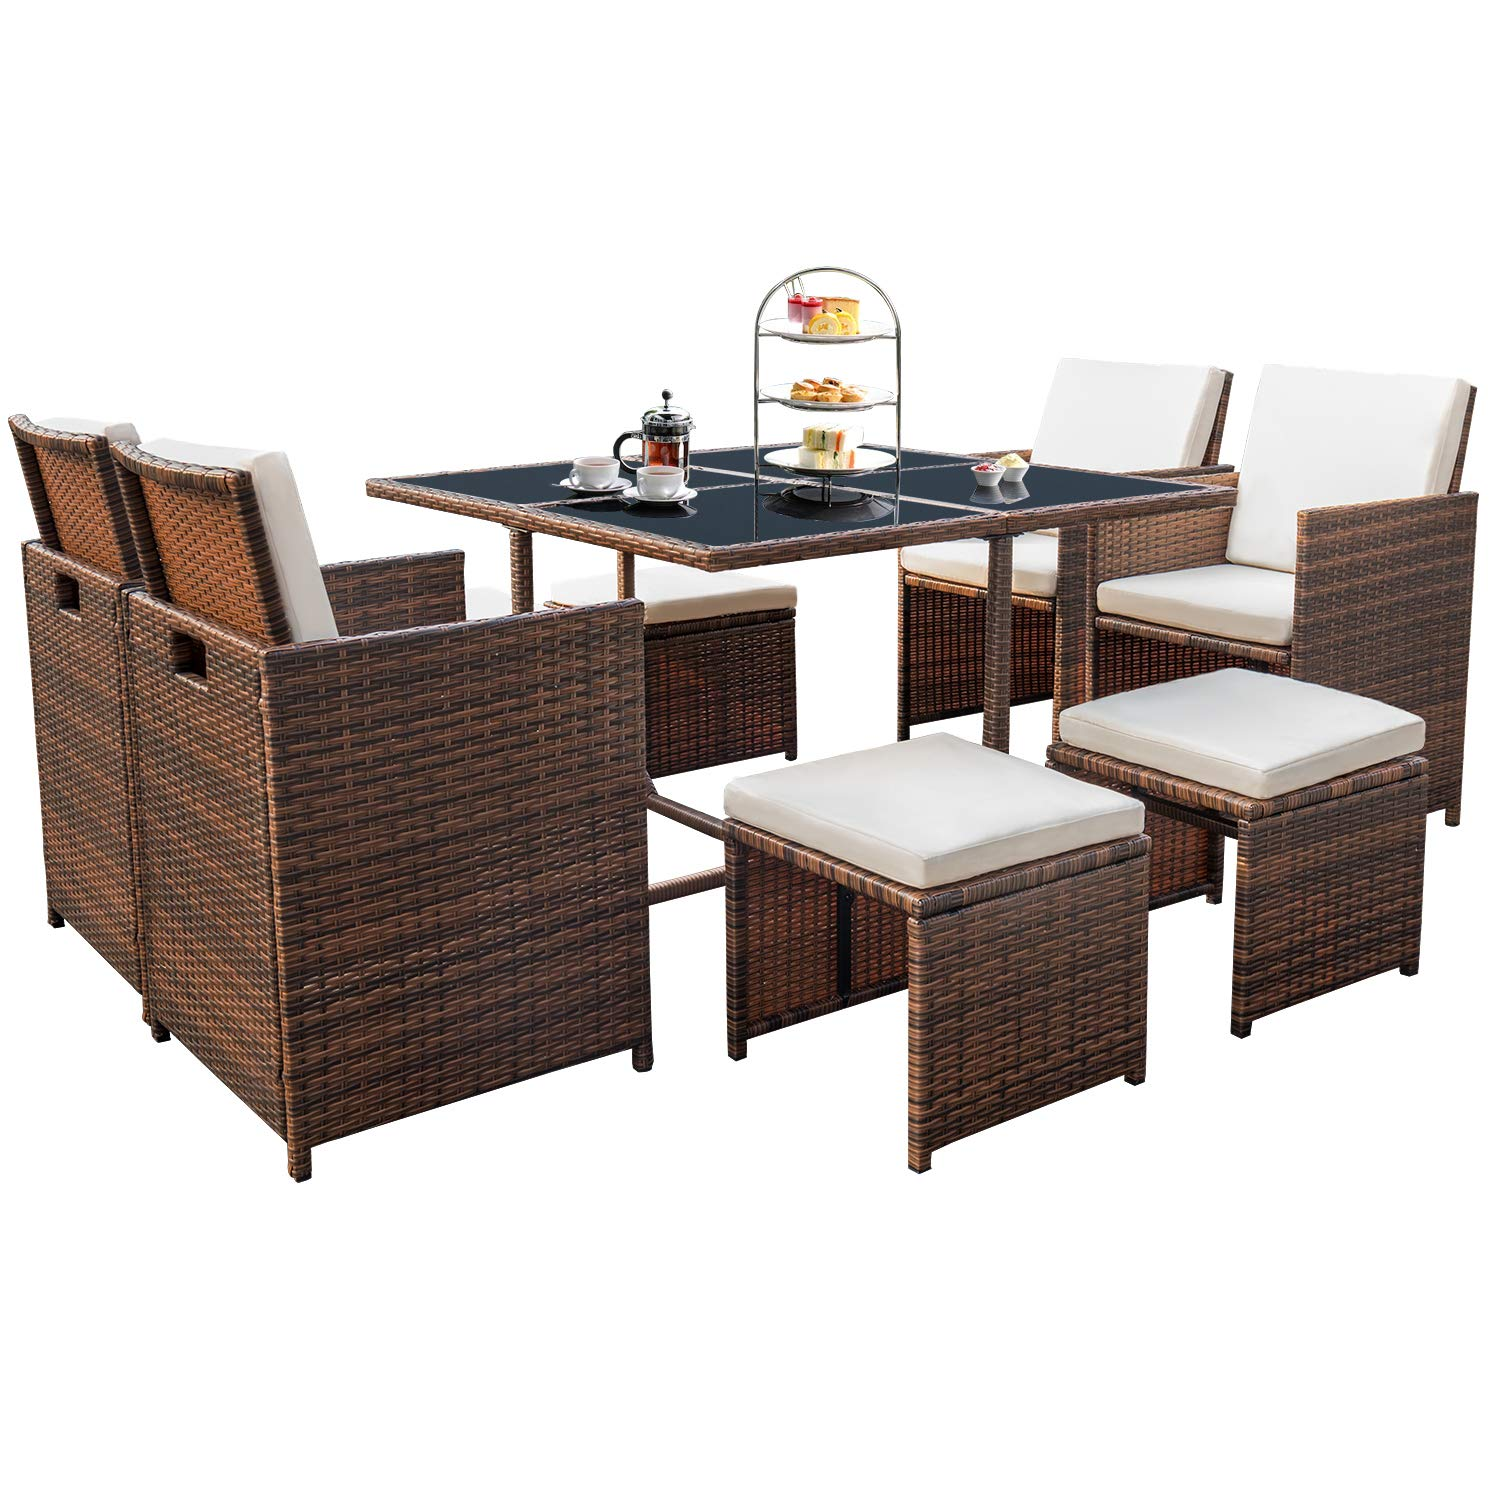 Devoko 9 Pieces Patio Dining Sets Outdoor Space Saving Rattan Chairs with Glass Table Patio Furniture Sets Cushioned Seating and Back Sectional Conversation Set Brown